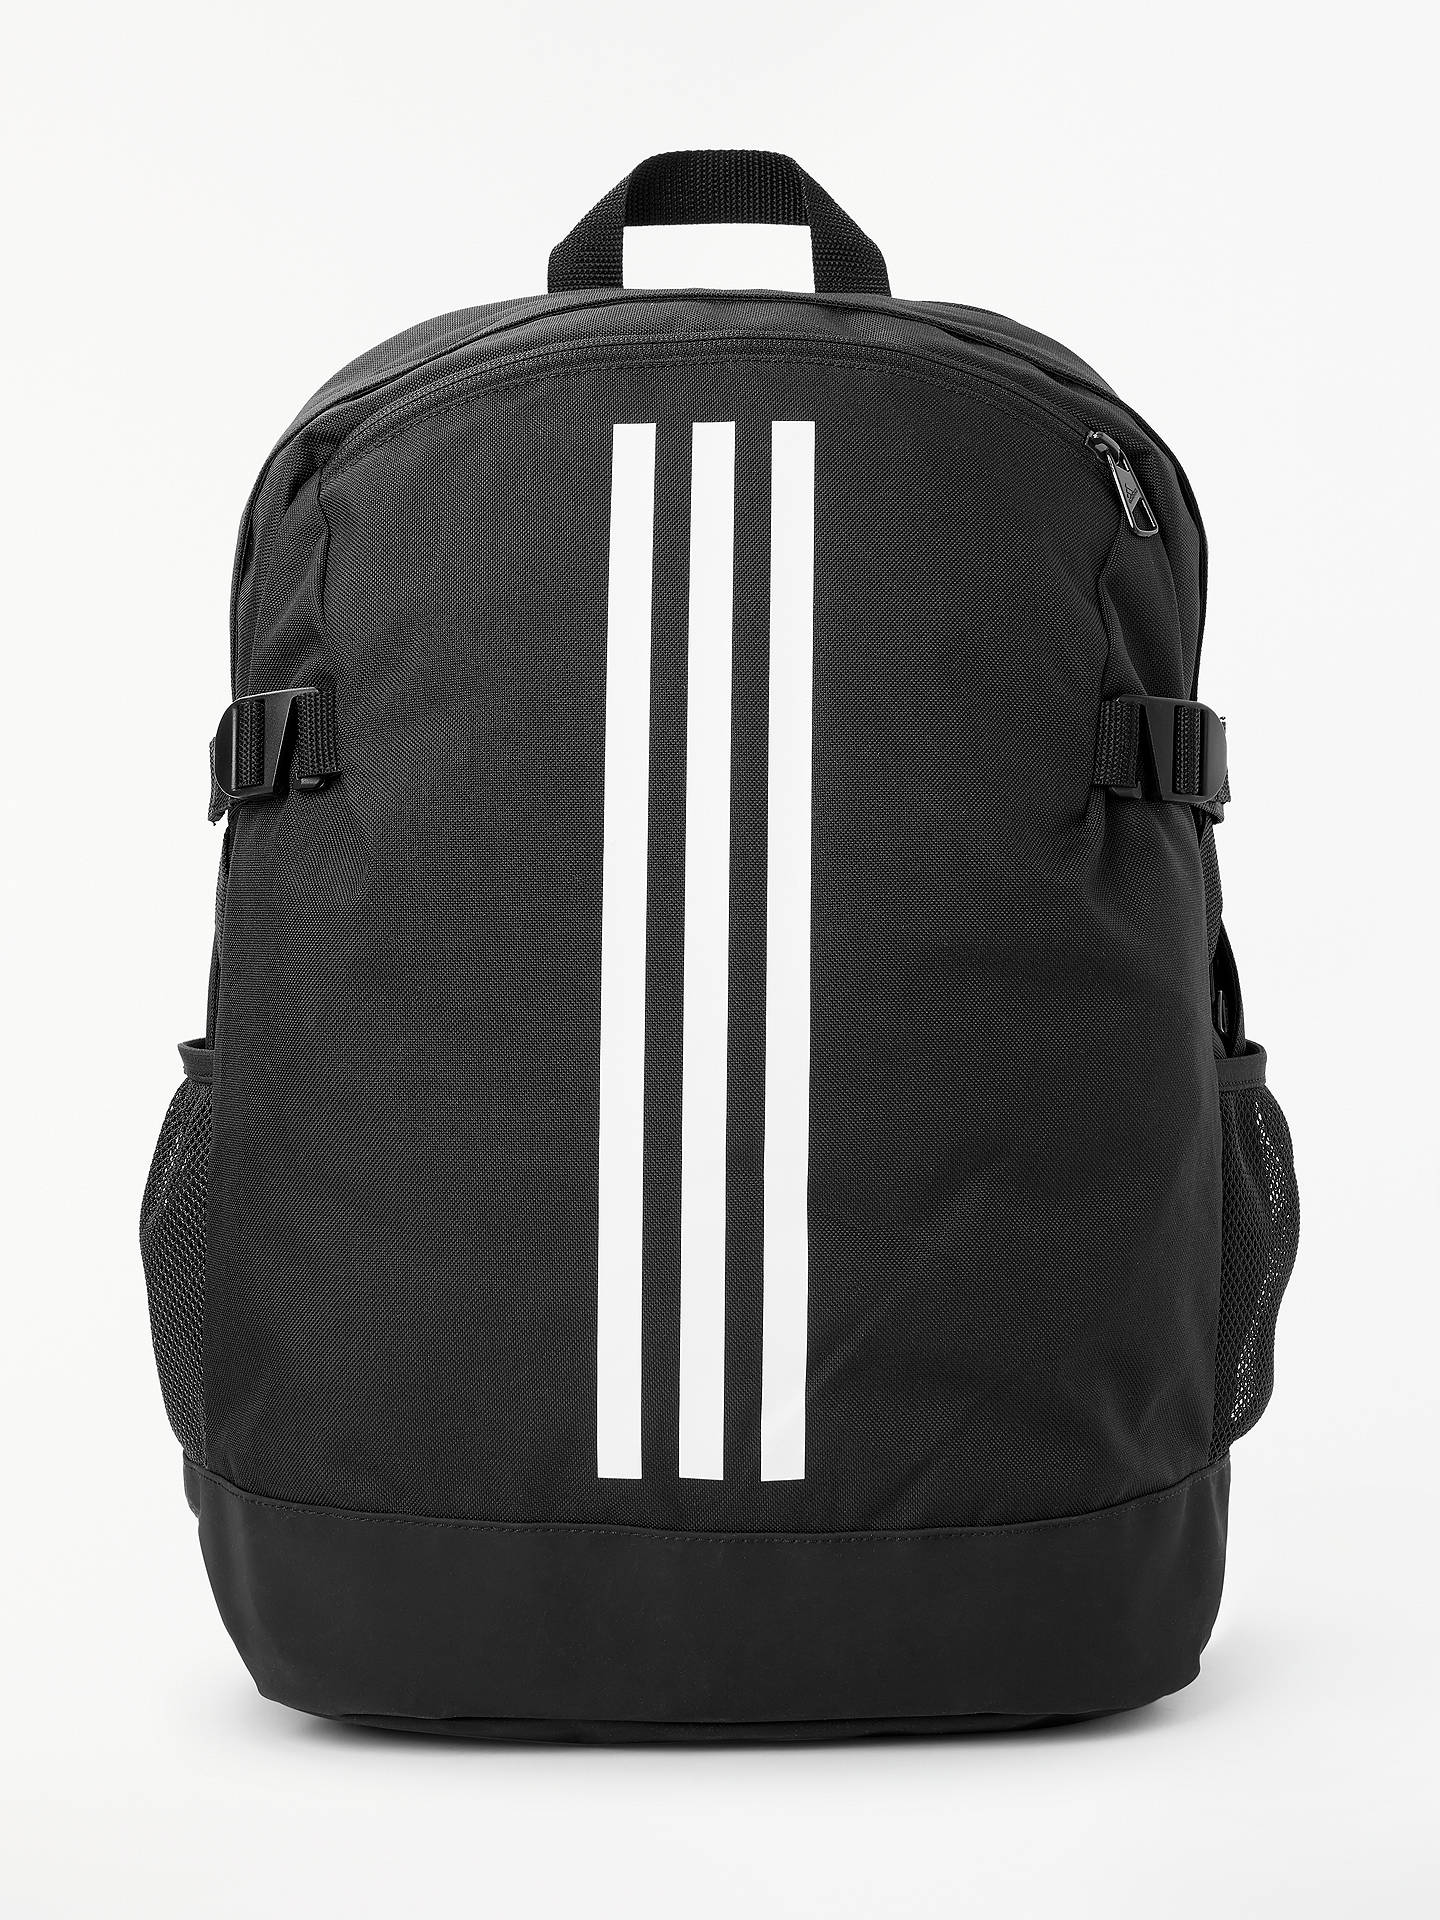 27766314e4 adidas 3-Stripes Power Sports Backpack at John Lewis   Partners